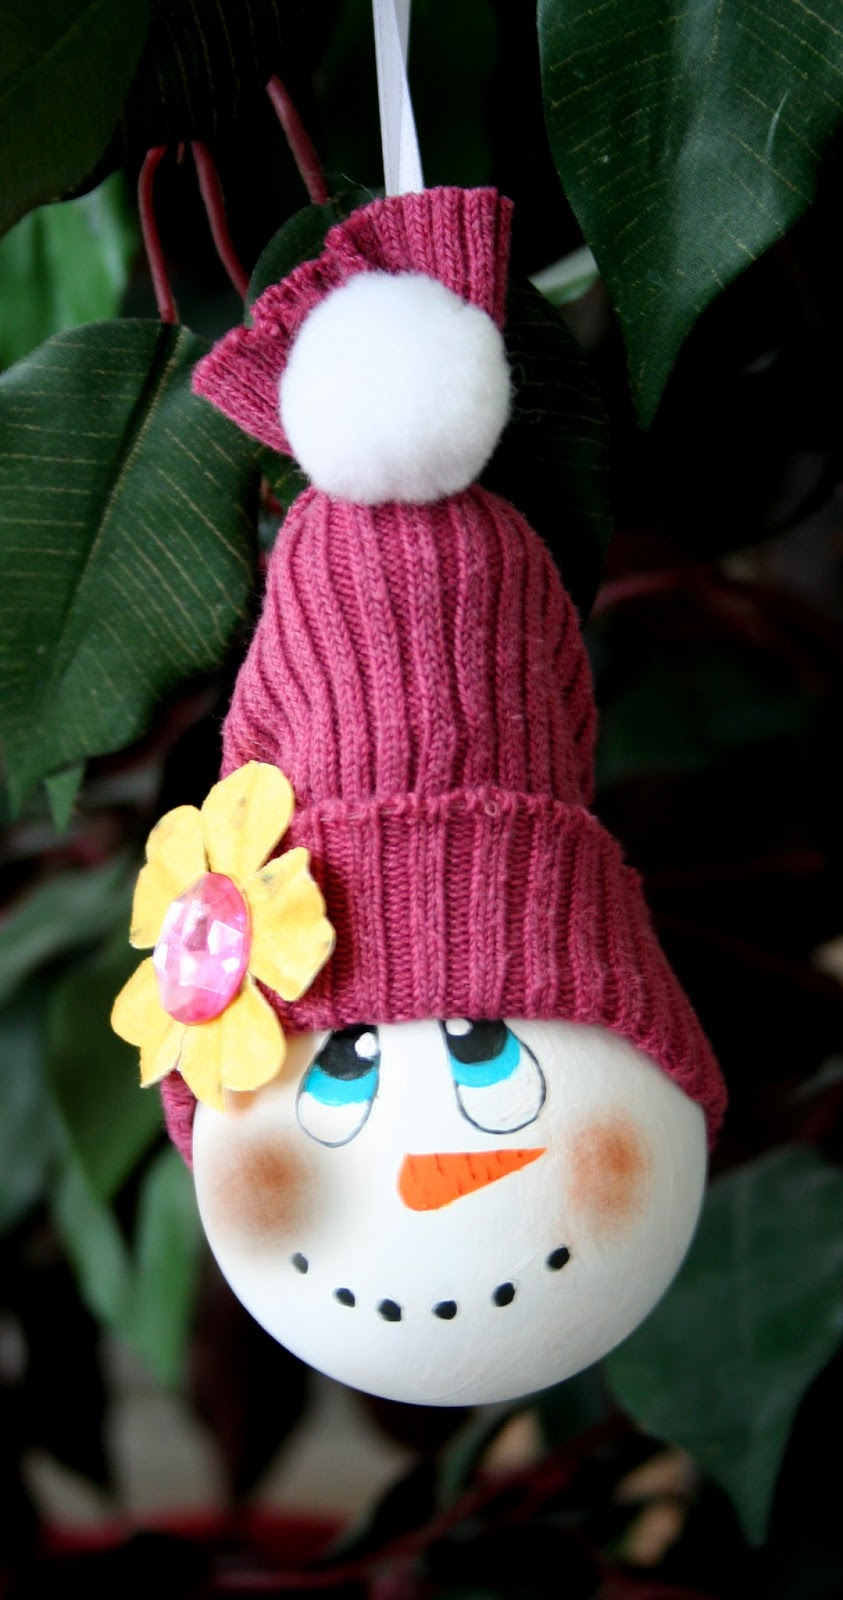 http://www.squidoo.com/how-to-make-a-snowman-ornament-from-a-recycled-light-bulb-30895